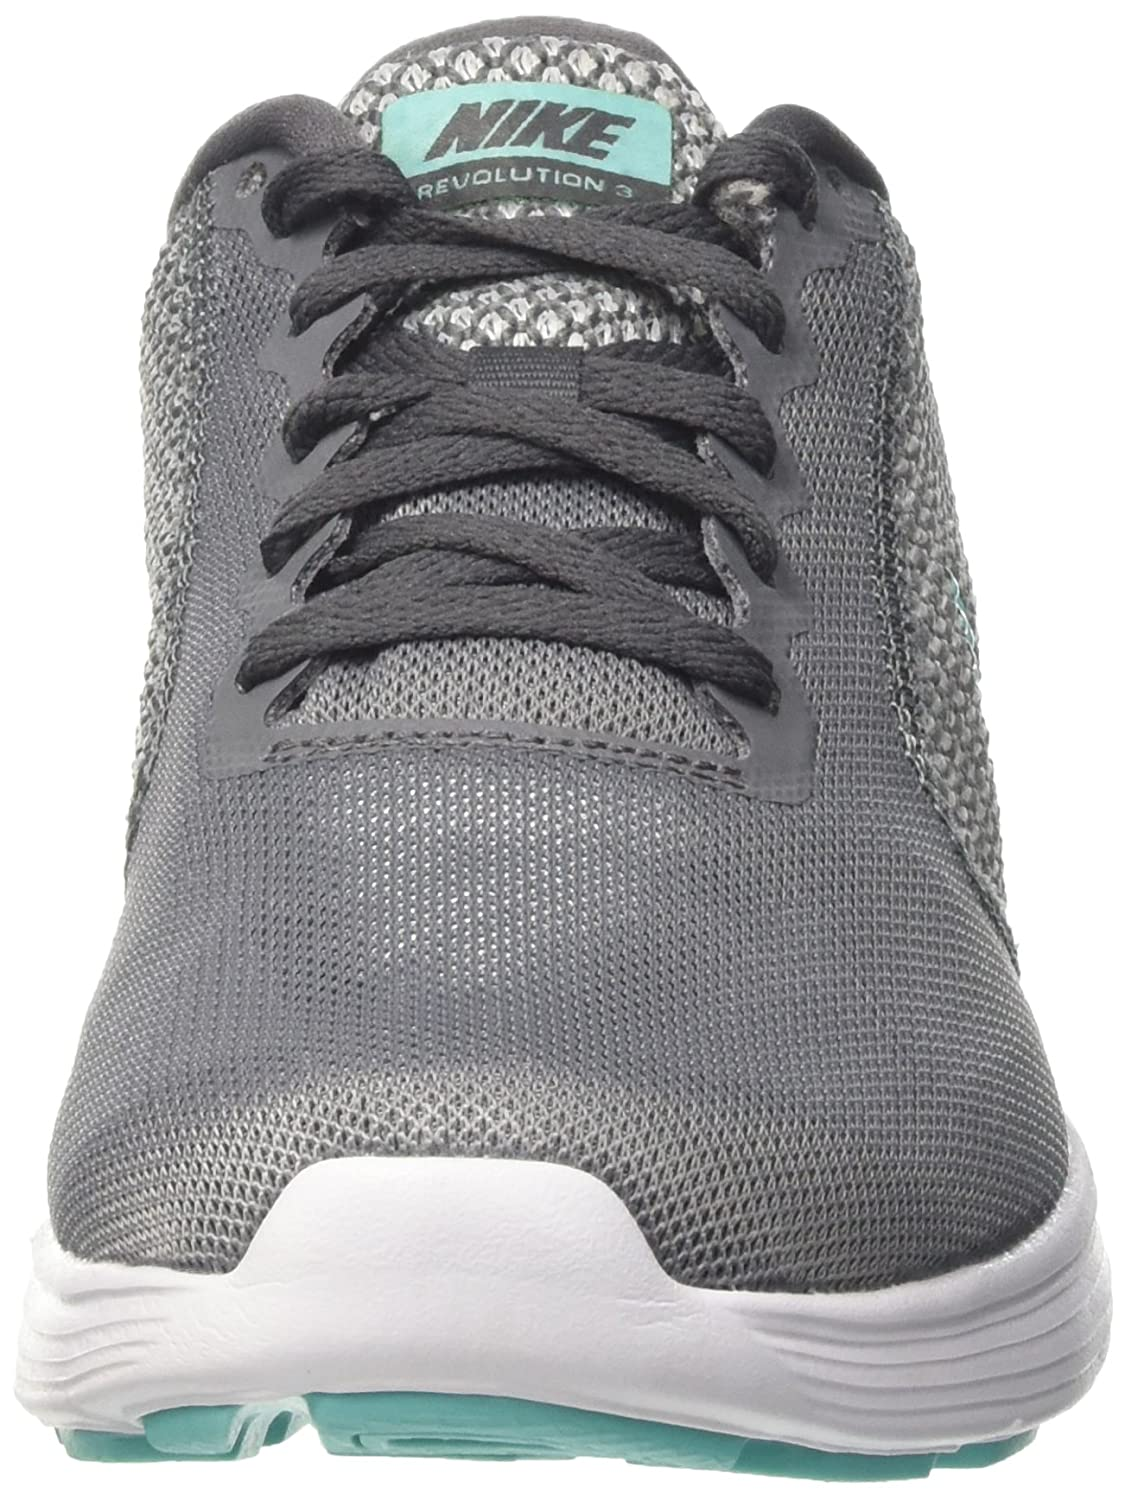 NIKE Women's Revolution 3 Running Shoe B006WW3KM0 10 B(M) US|Cool Grey/Aurora Green/Dark Grey/White